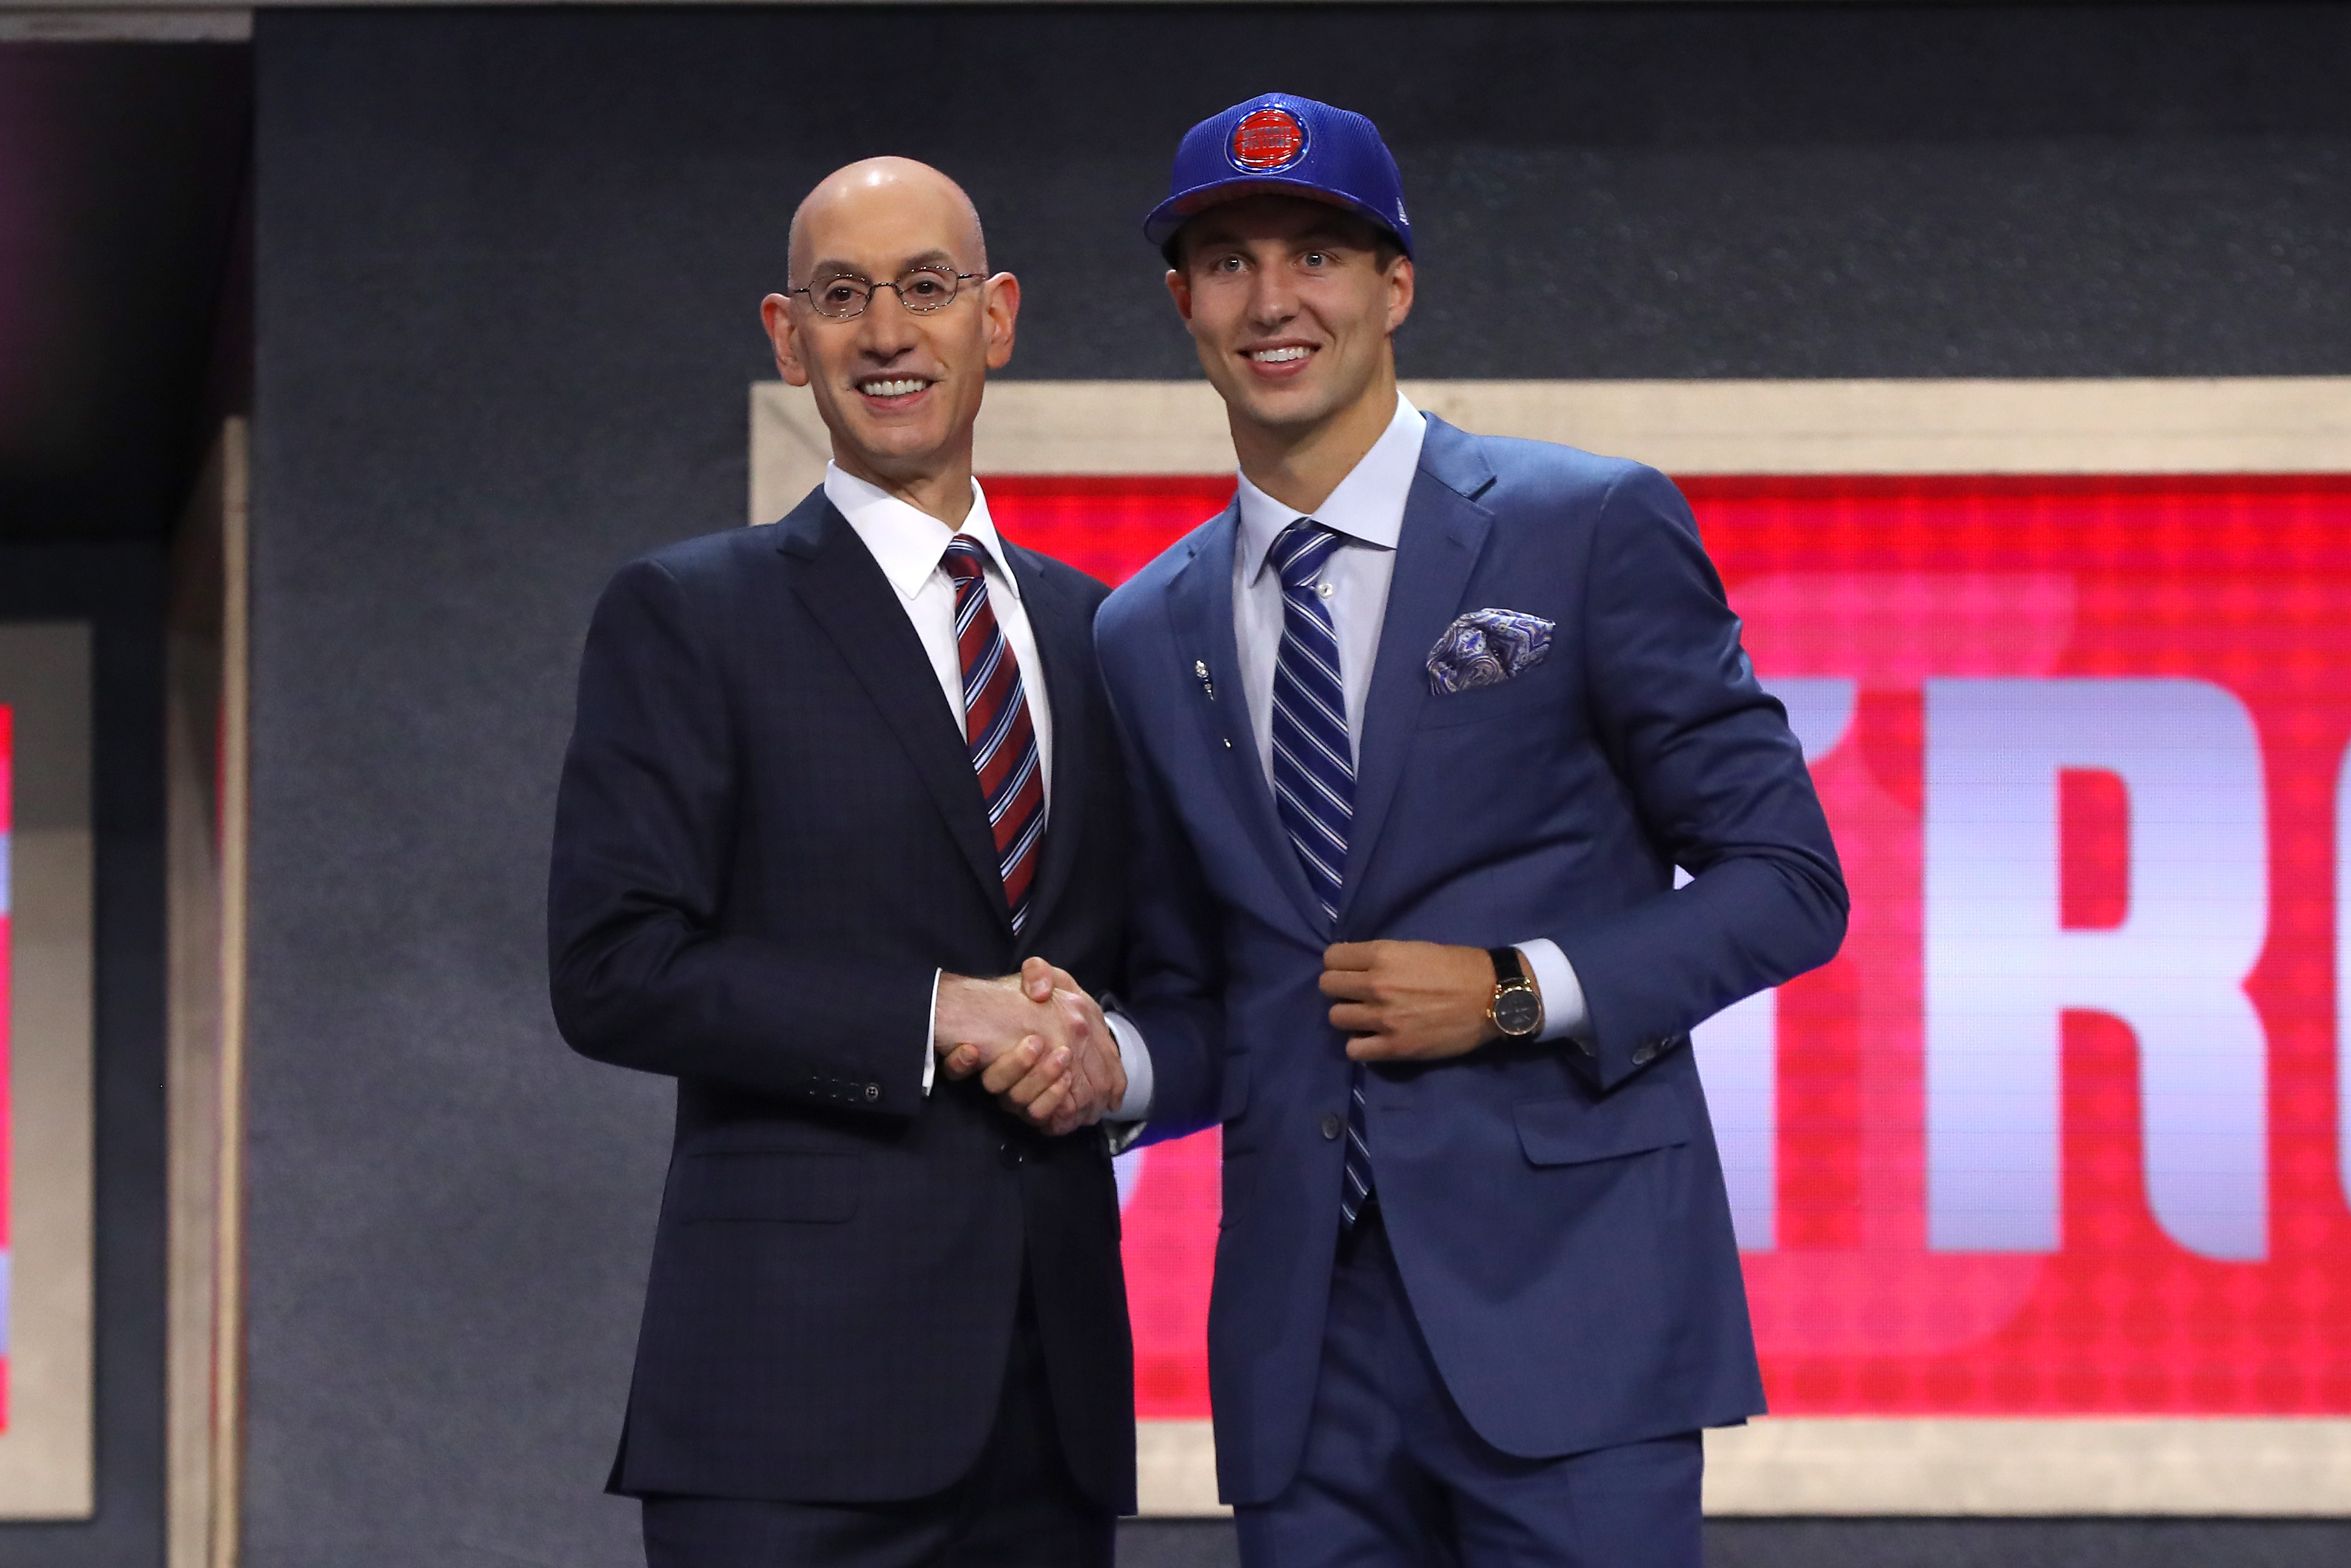 699986880-2017-nba-draft.jpg